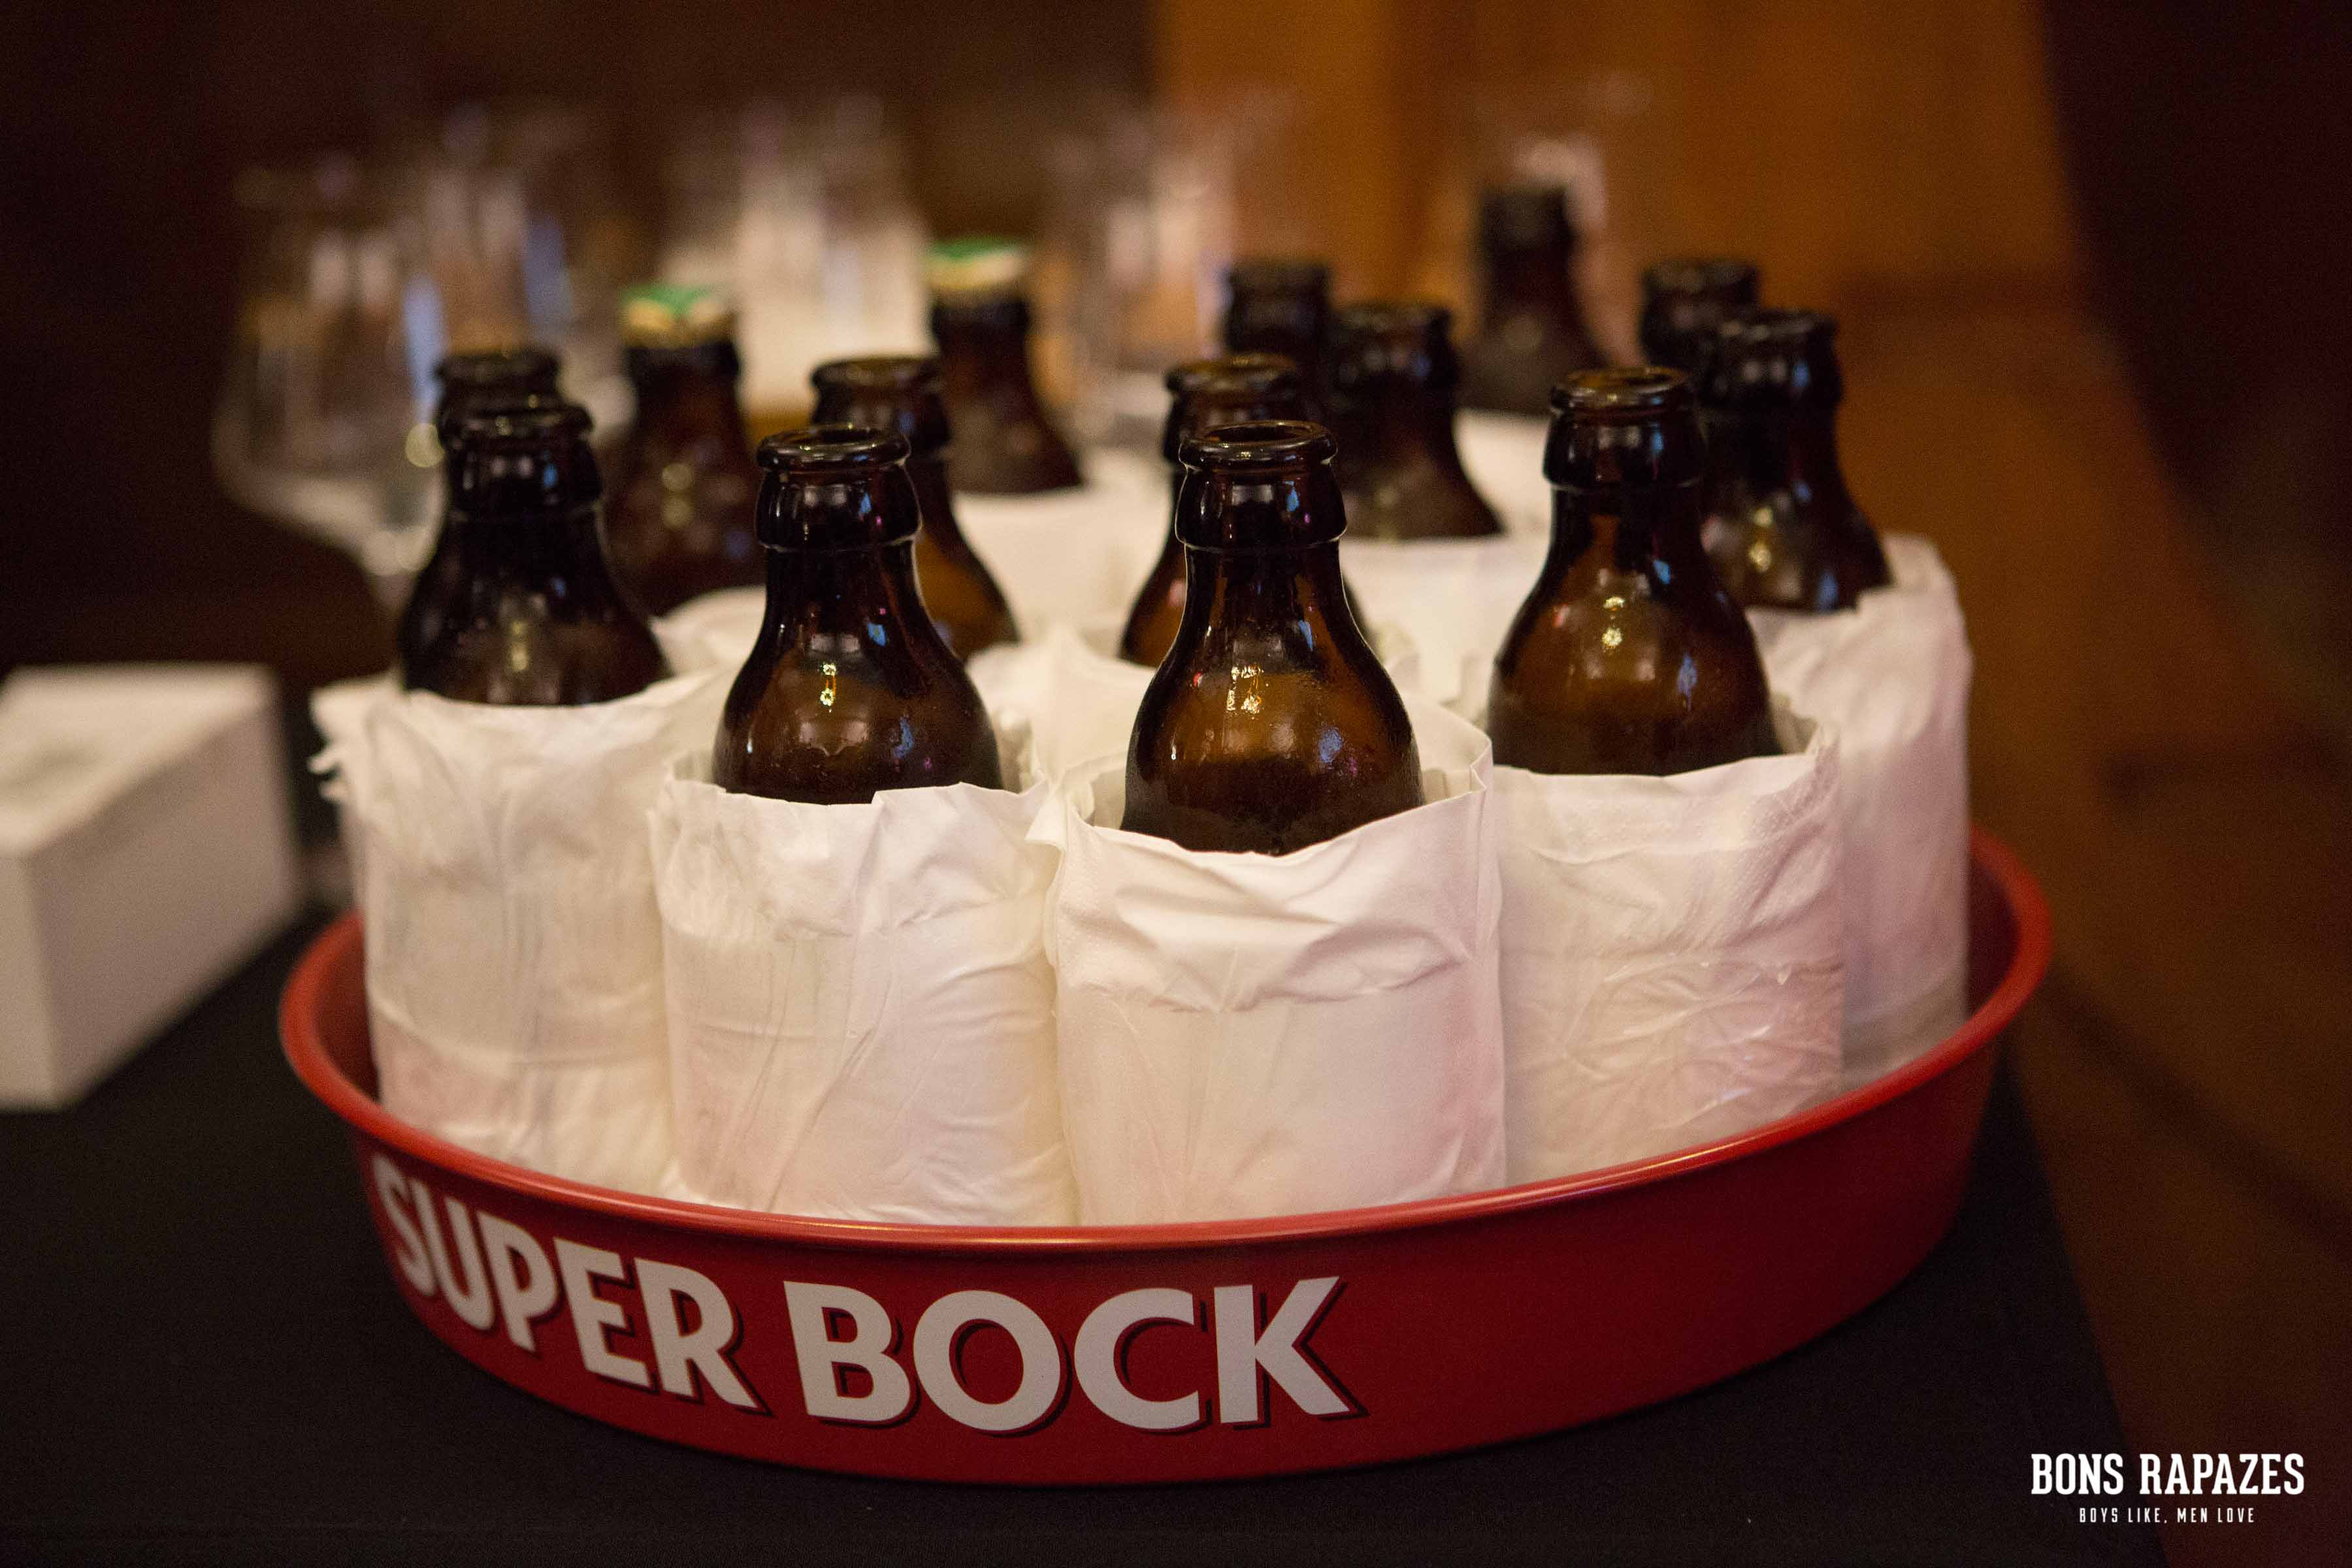 bons-rapazes-super-bock-beer-experience-22